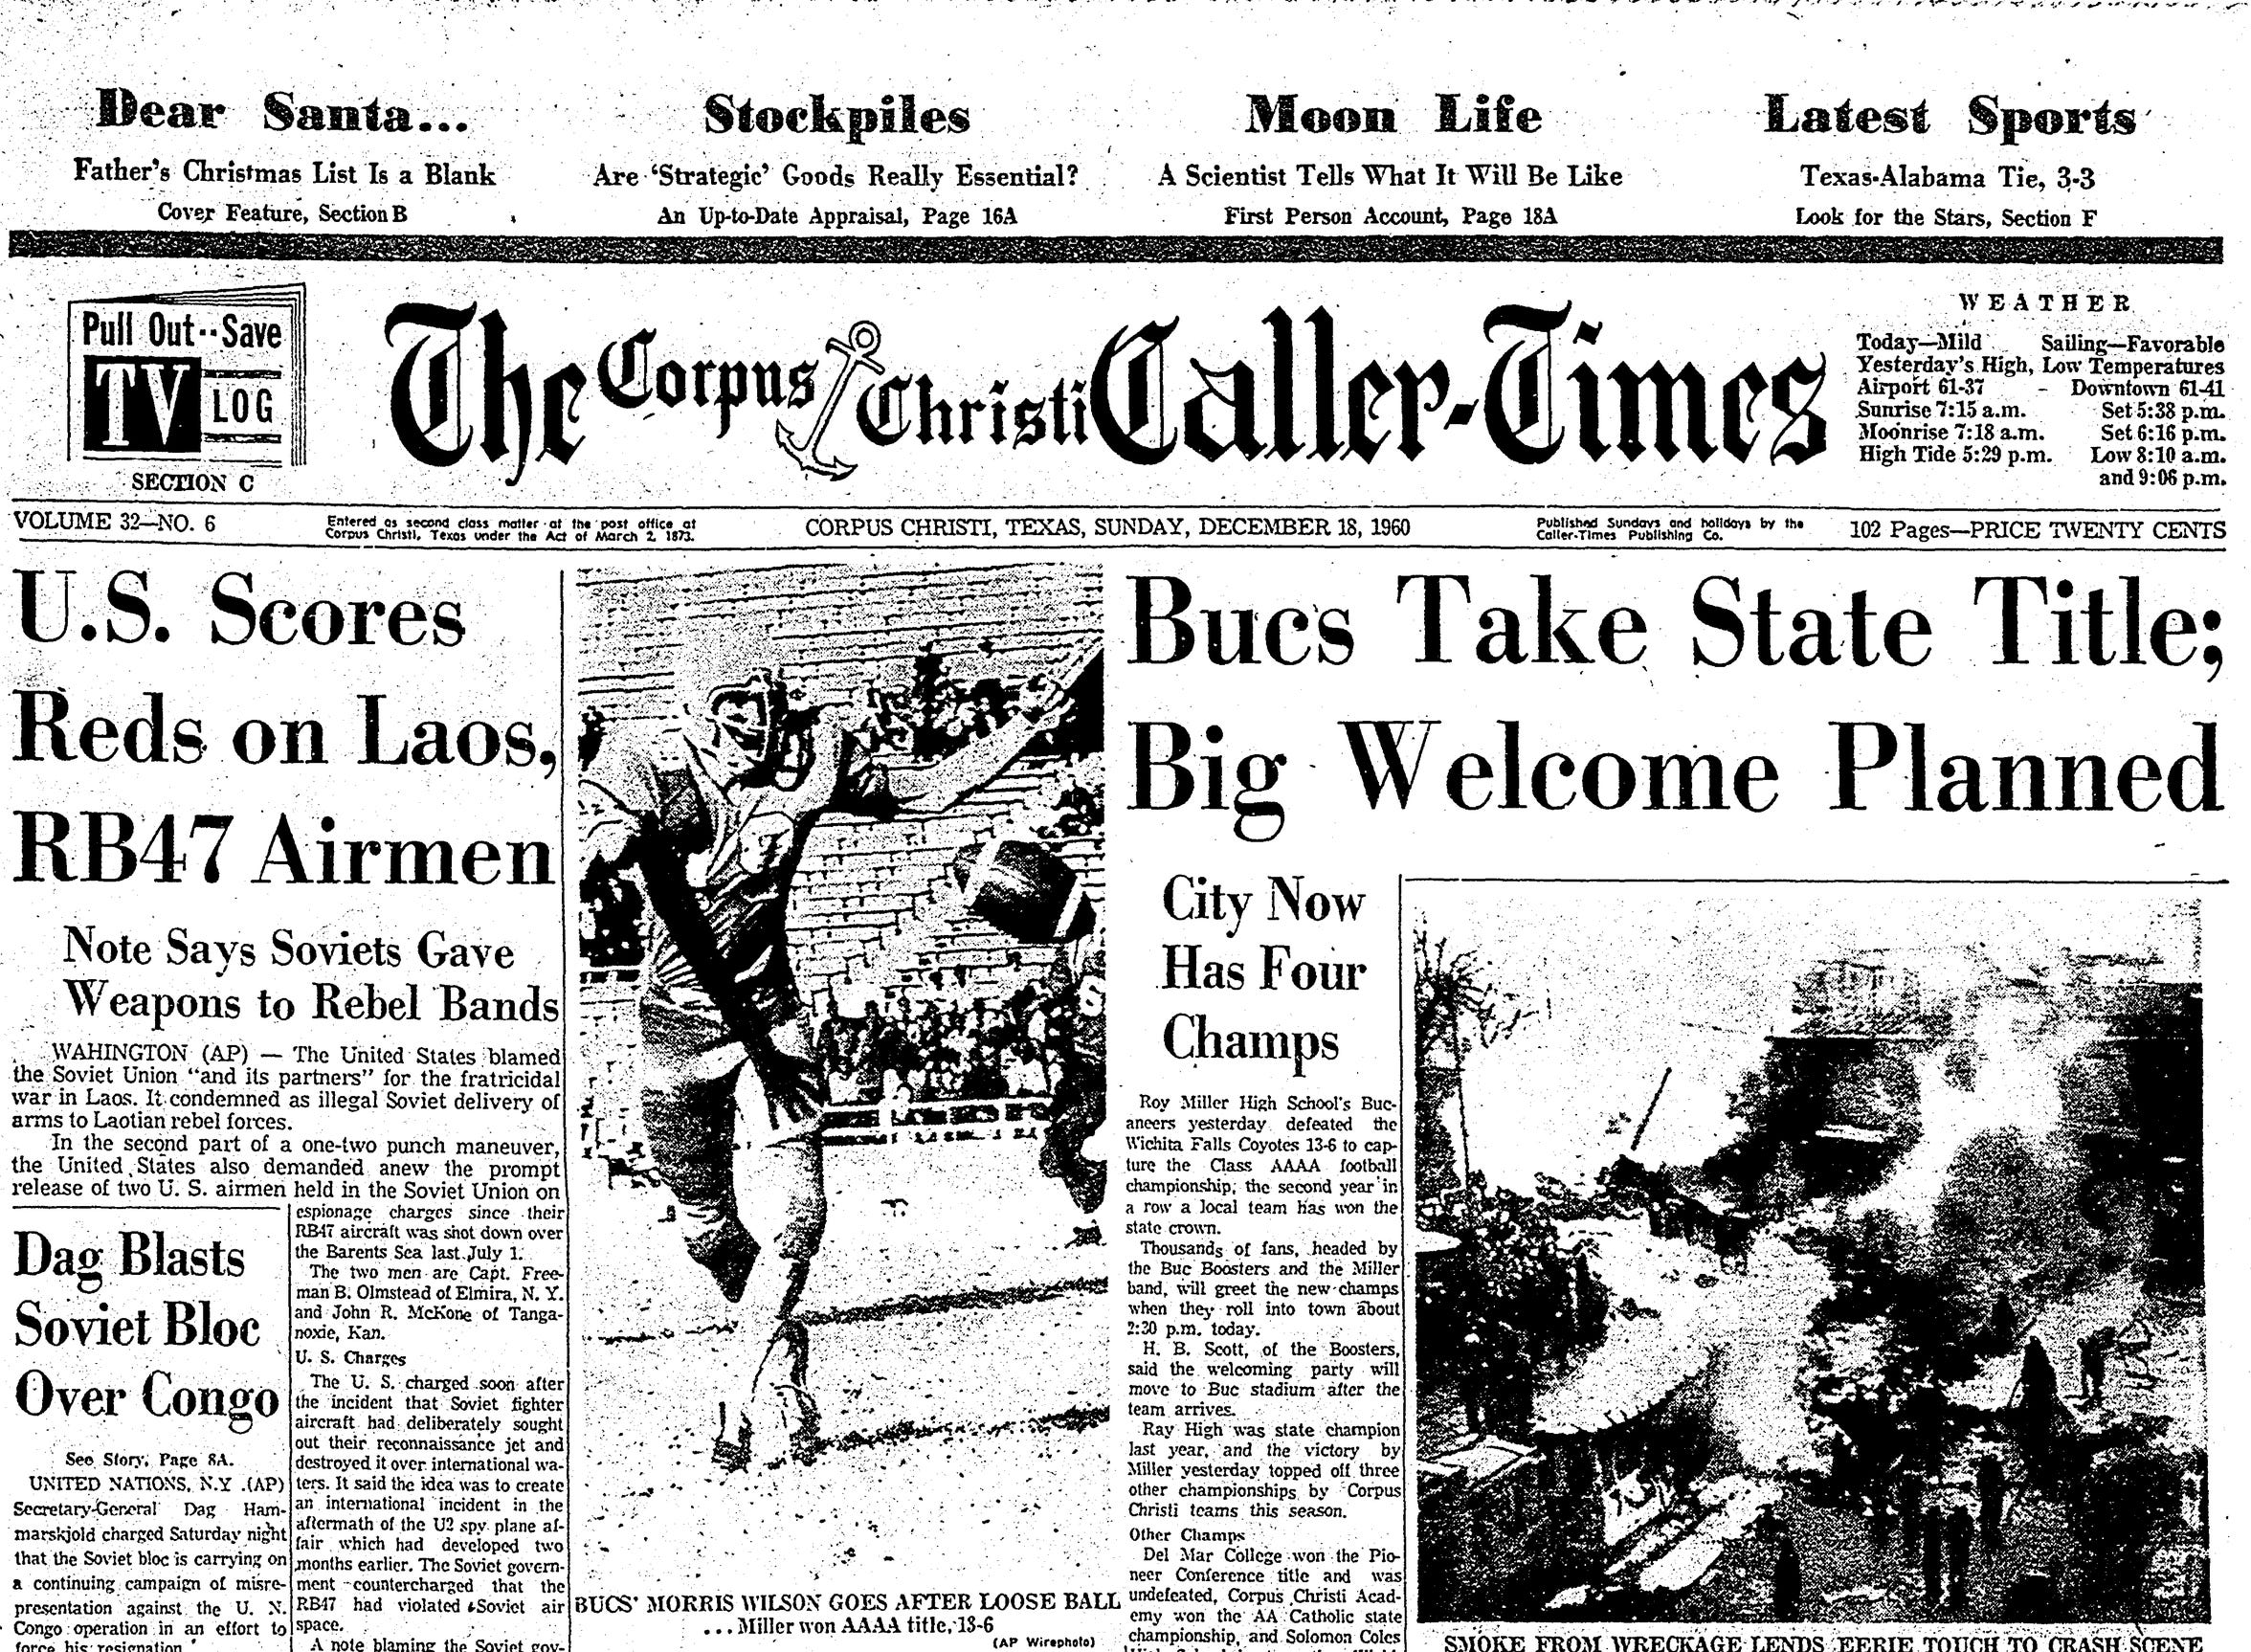 The cover of the Corpus Christi Caller-Times on Dec. 17, 1960 after Miller High School won the state football championship.